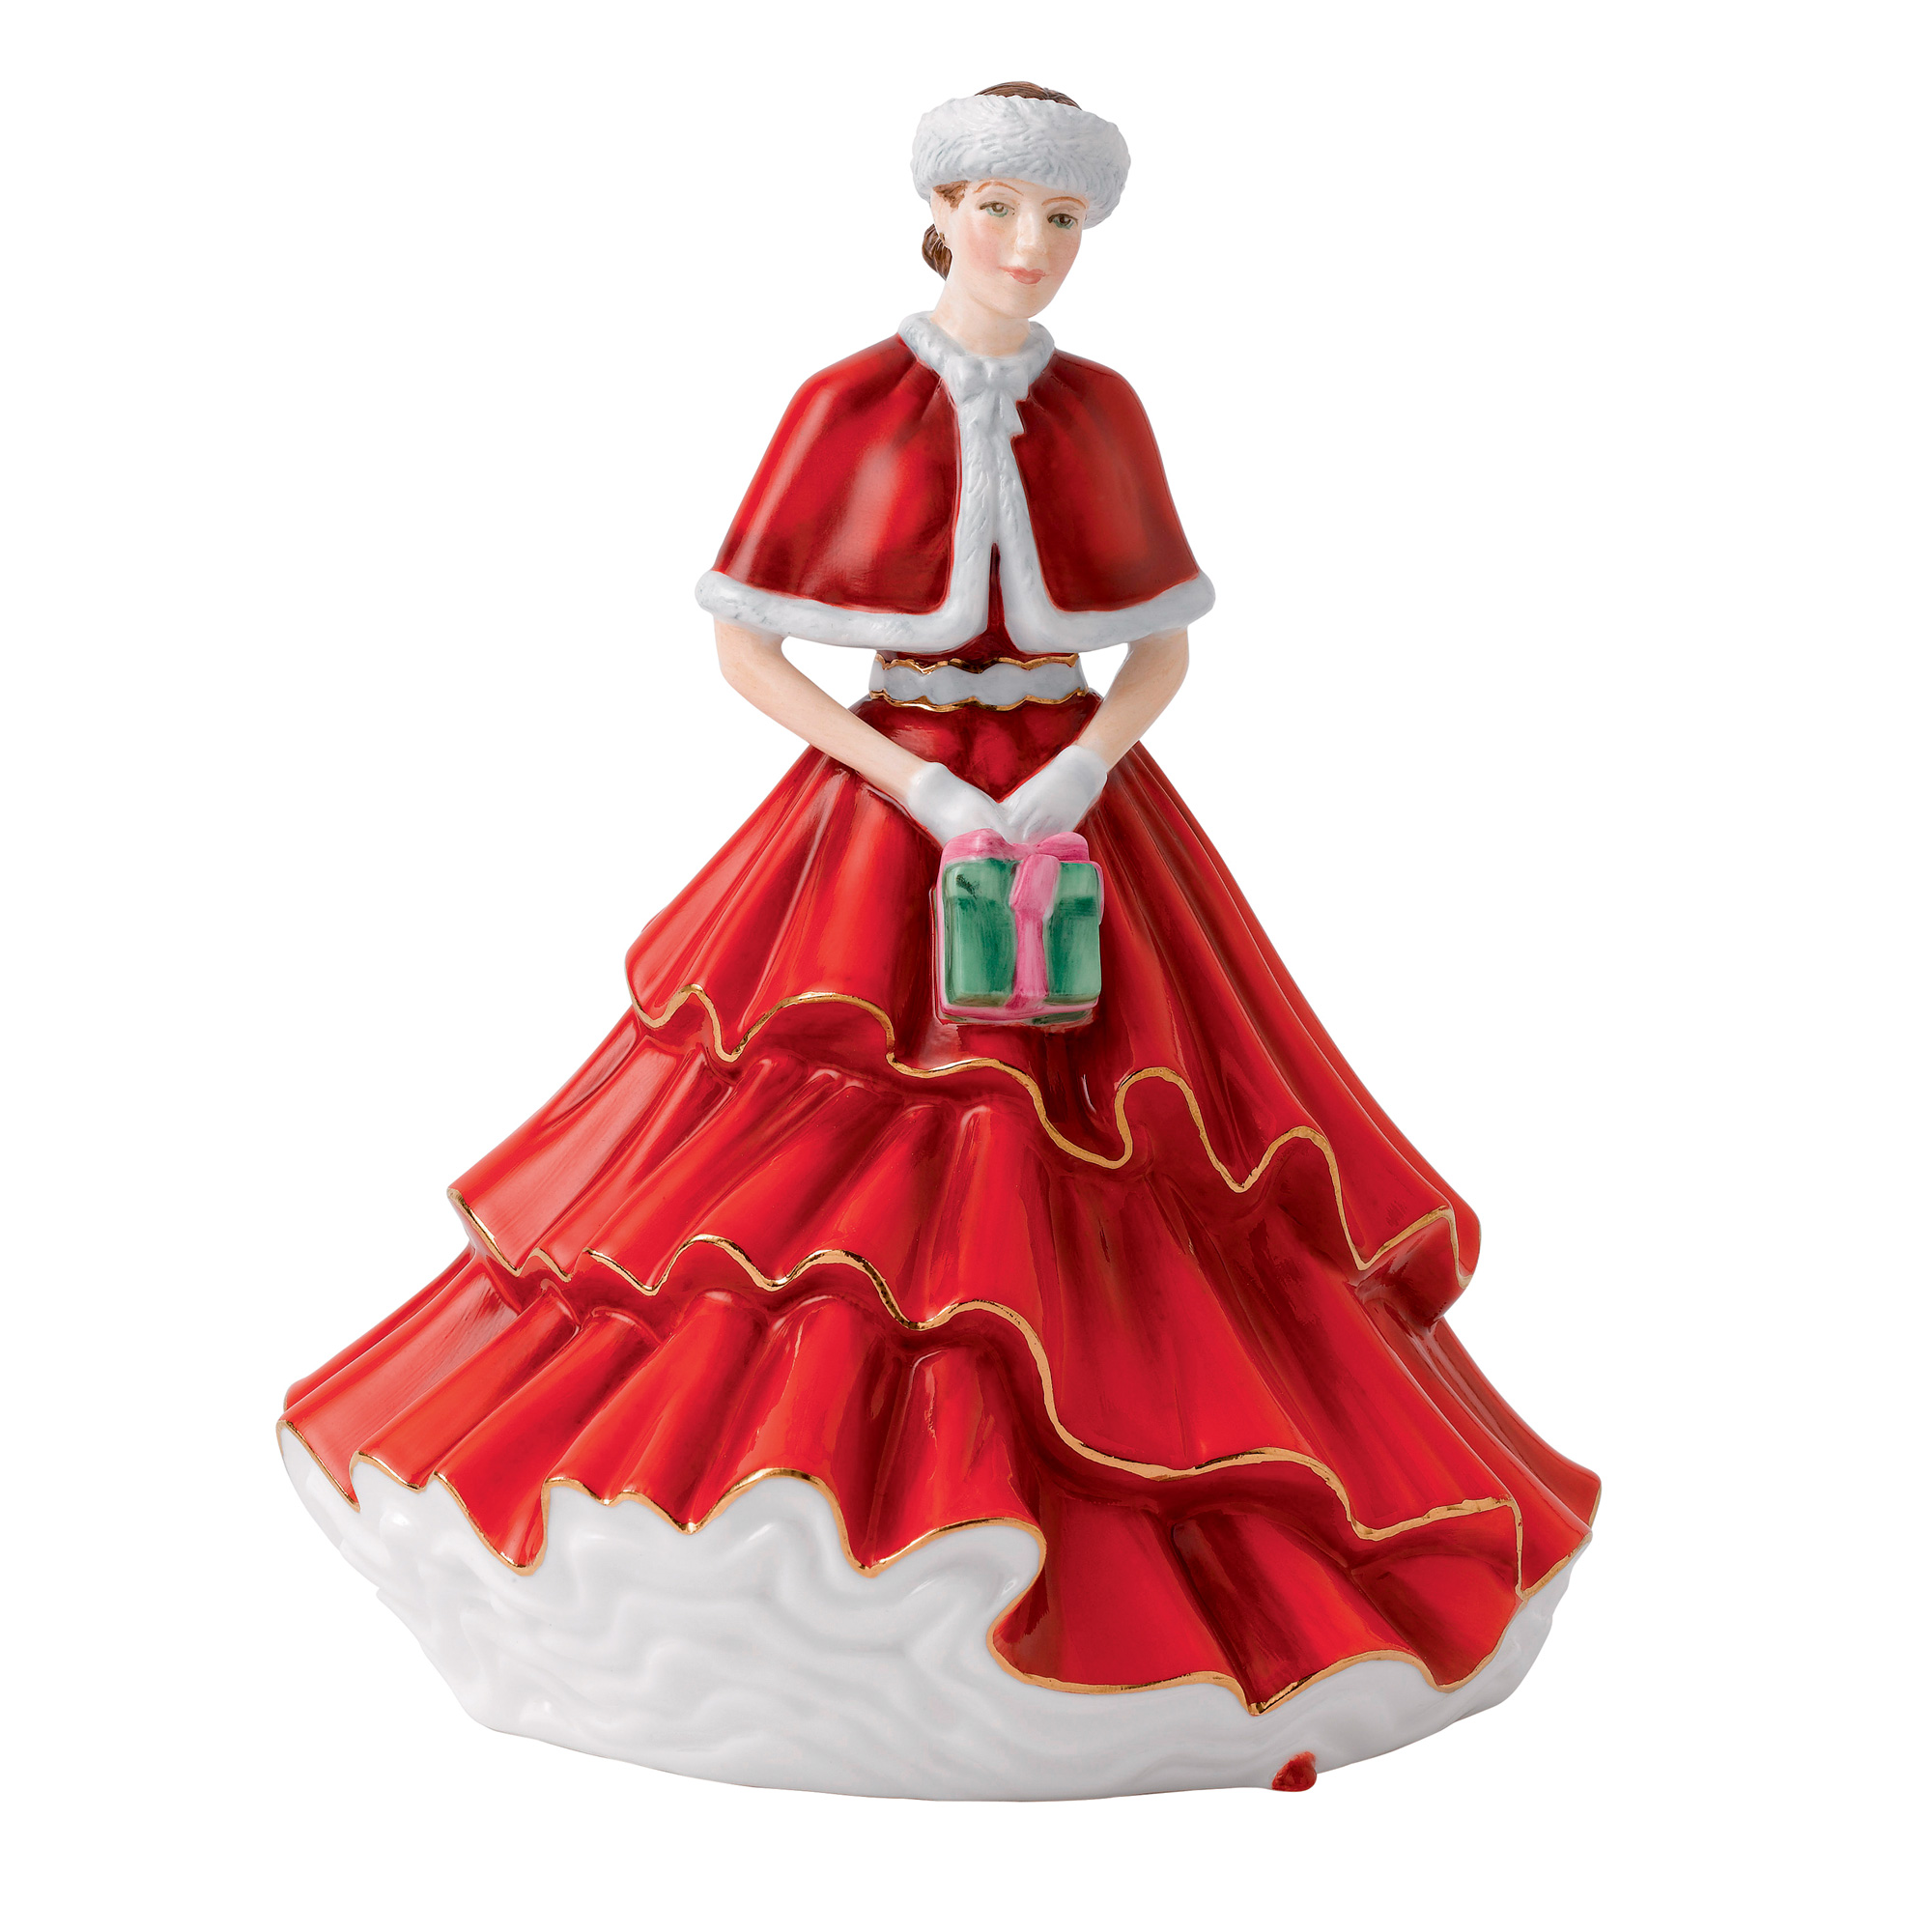 A Gift for Christmas HN5780 - 2016 Royal Doulton Christmas Day Petite of the Year